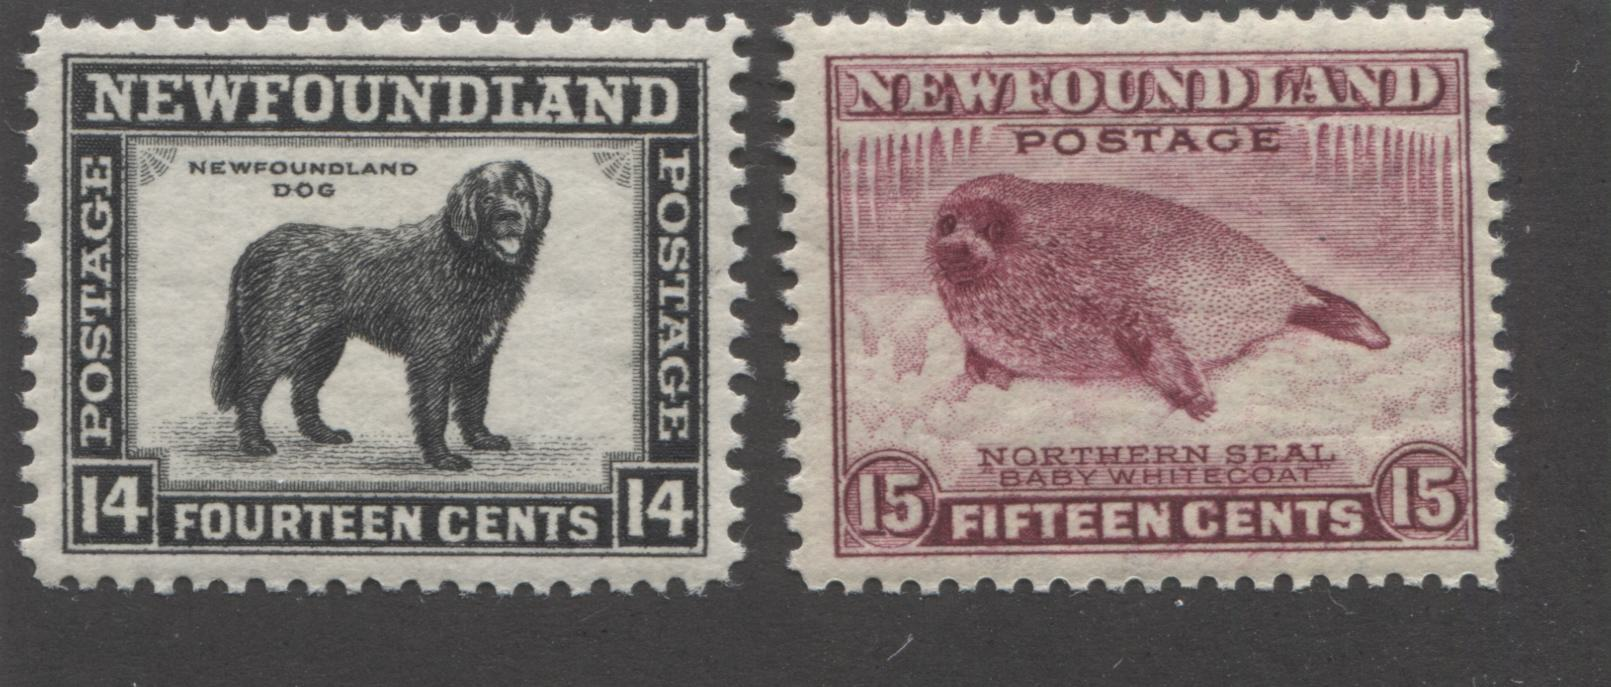 Newfoundland#261-262 14c Black and 15c Claret Newfoundland Dog & Northern Seal, 1941-1944 Second Resources Issue Very Fine Mint NH Singles, Line Perf. 12.5 x 12.6 and 12.75 x 12.5 Brixton Chrome